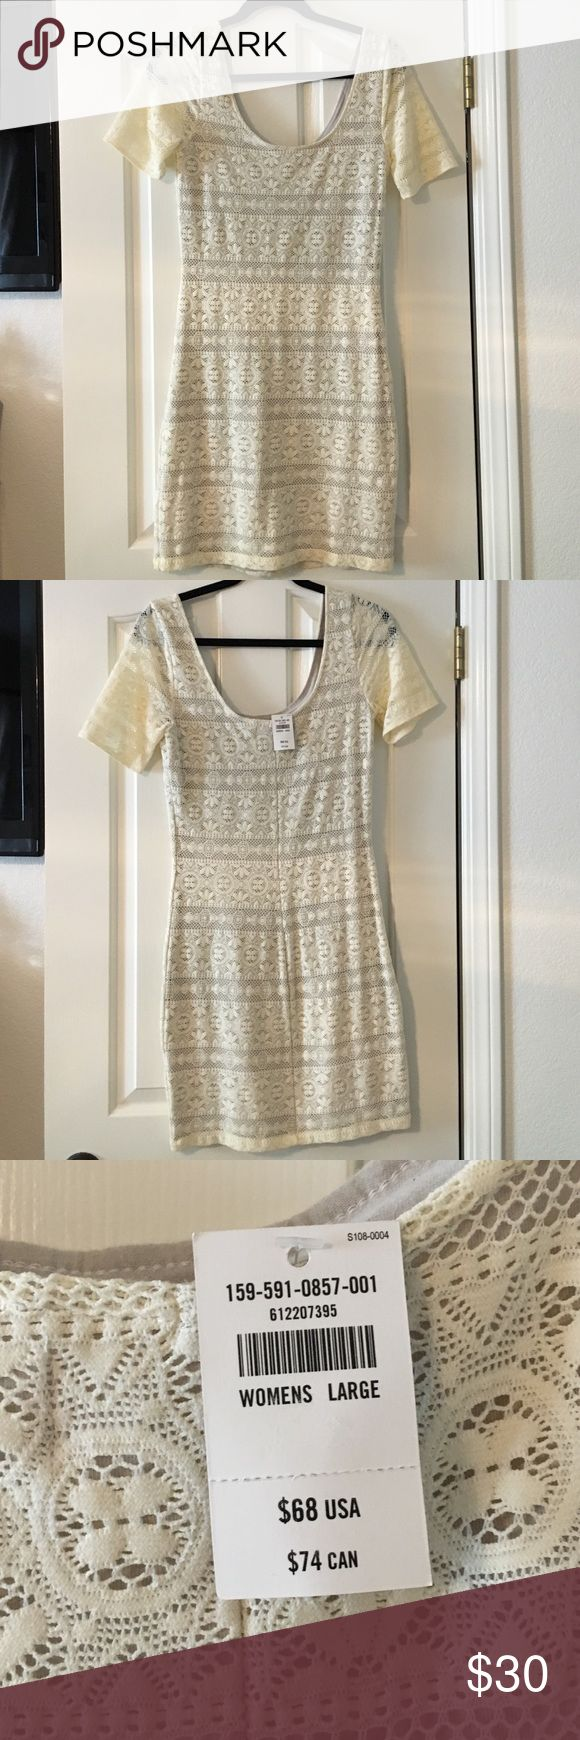 NWT Abercrombie & Fitch dress NWT Abercrombie and Fitch lace dress. Cream Abercrombie & Fitch Dresses